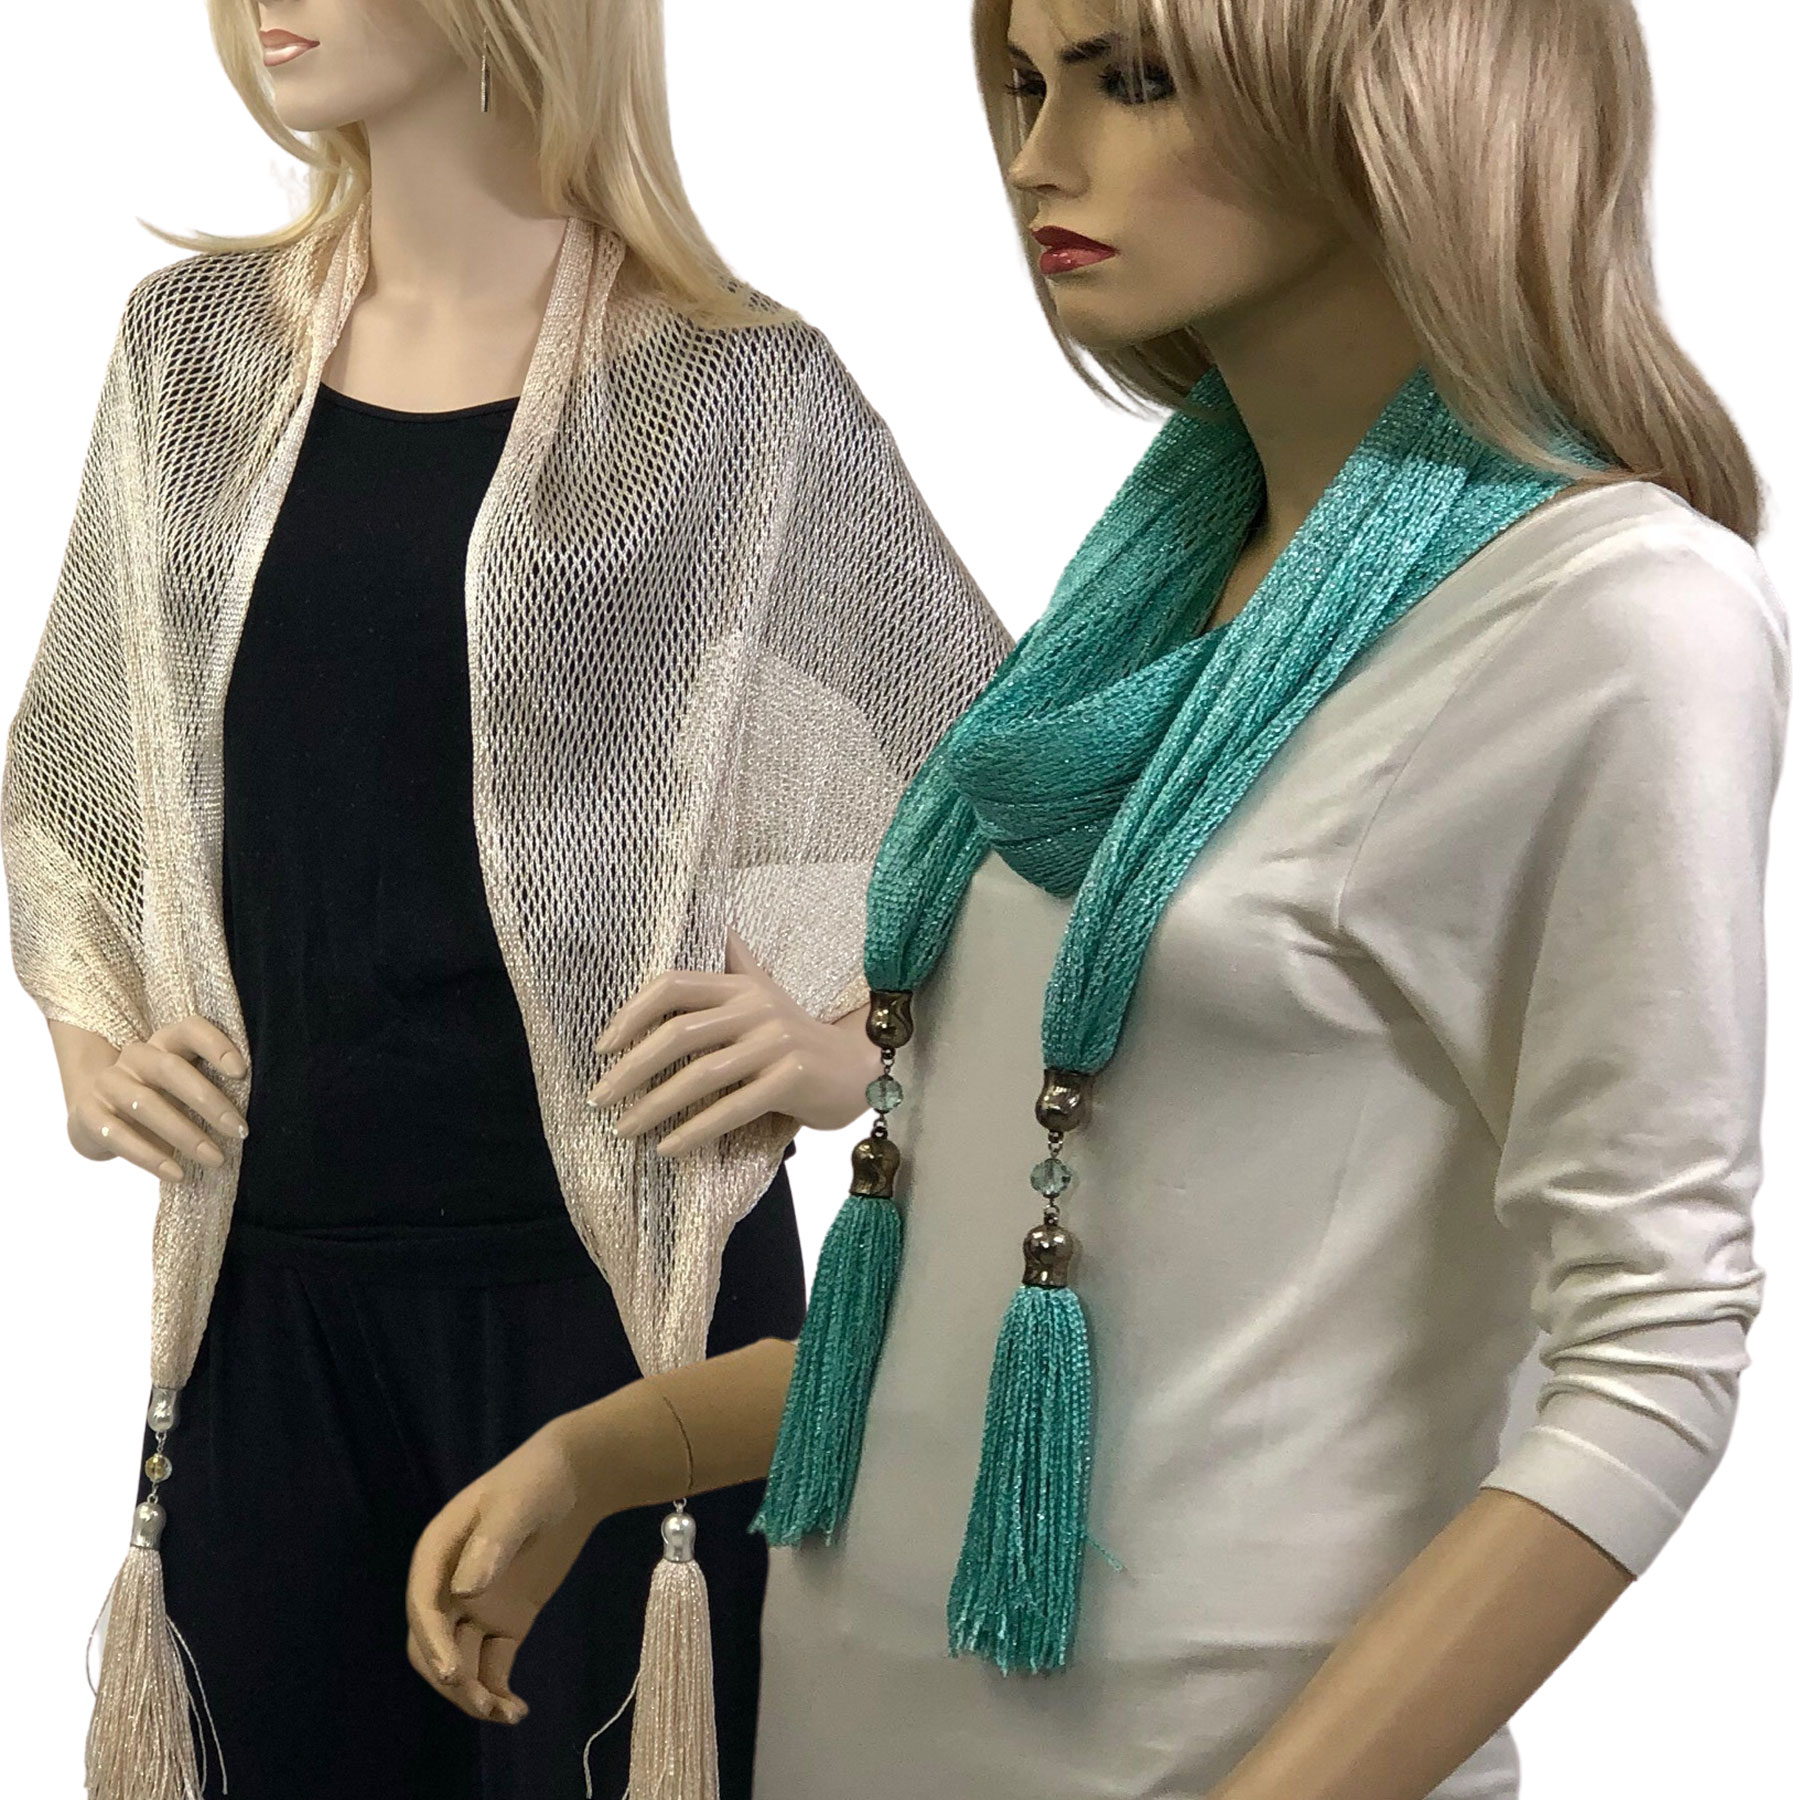 Oblong Scarves - Metallic w/ Jewelry MFNJ